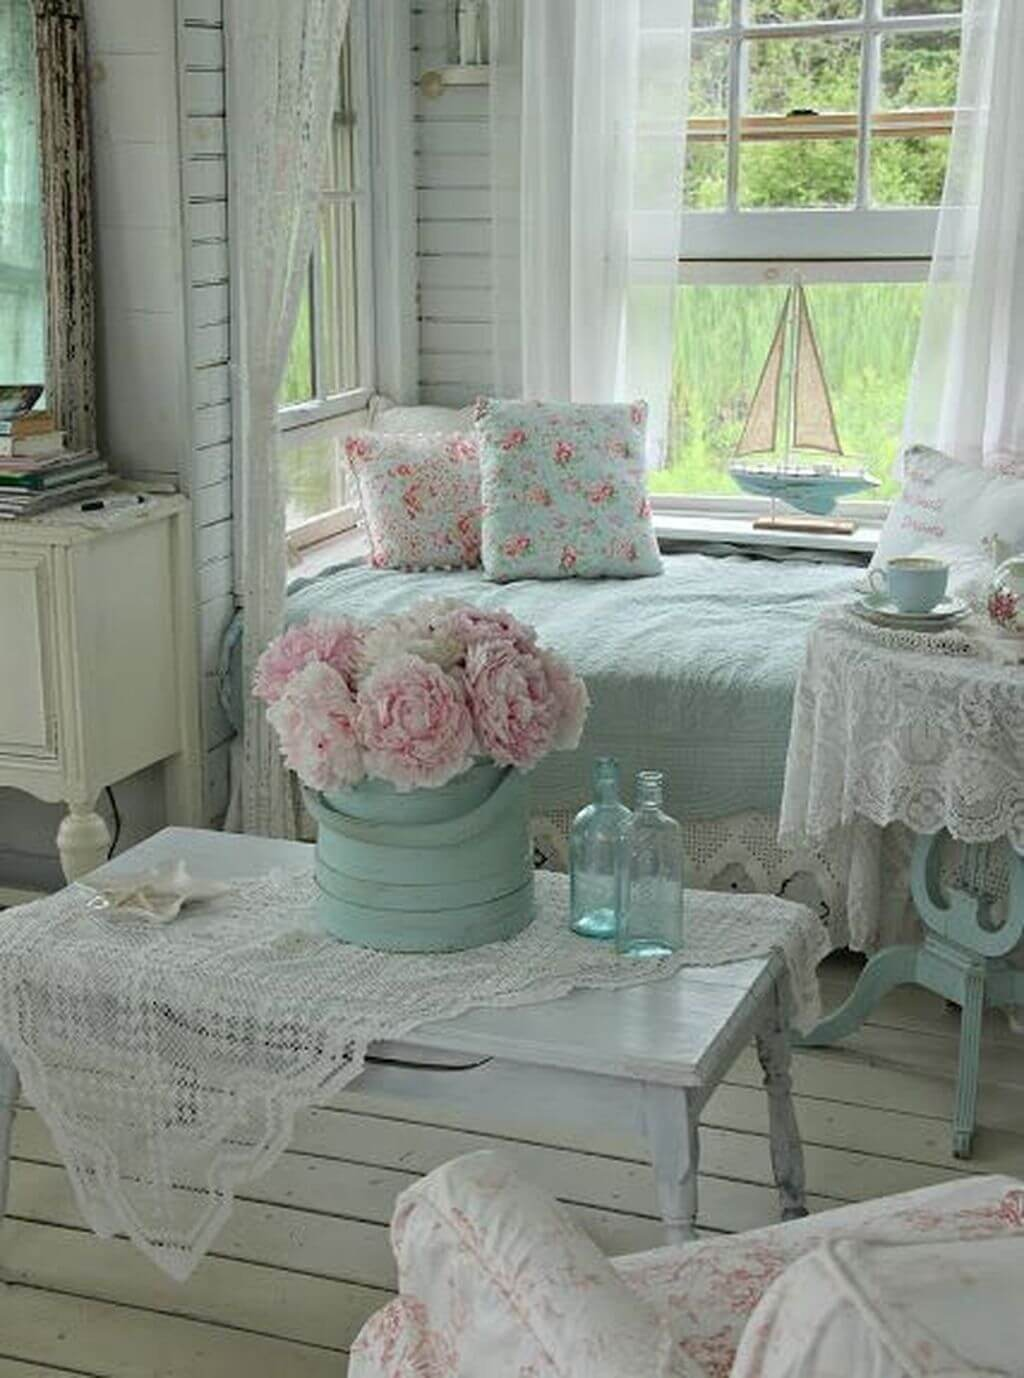 25 Fashionable Shabby Chic Bedroom (All Are Stylish!) - Q22